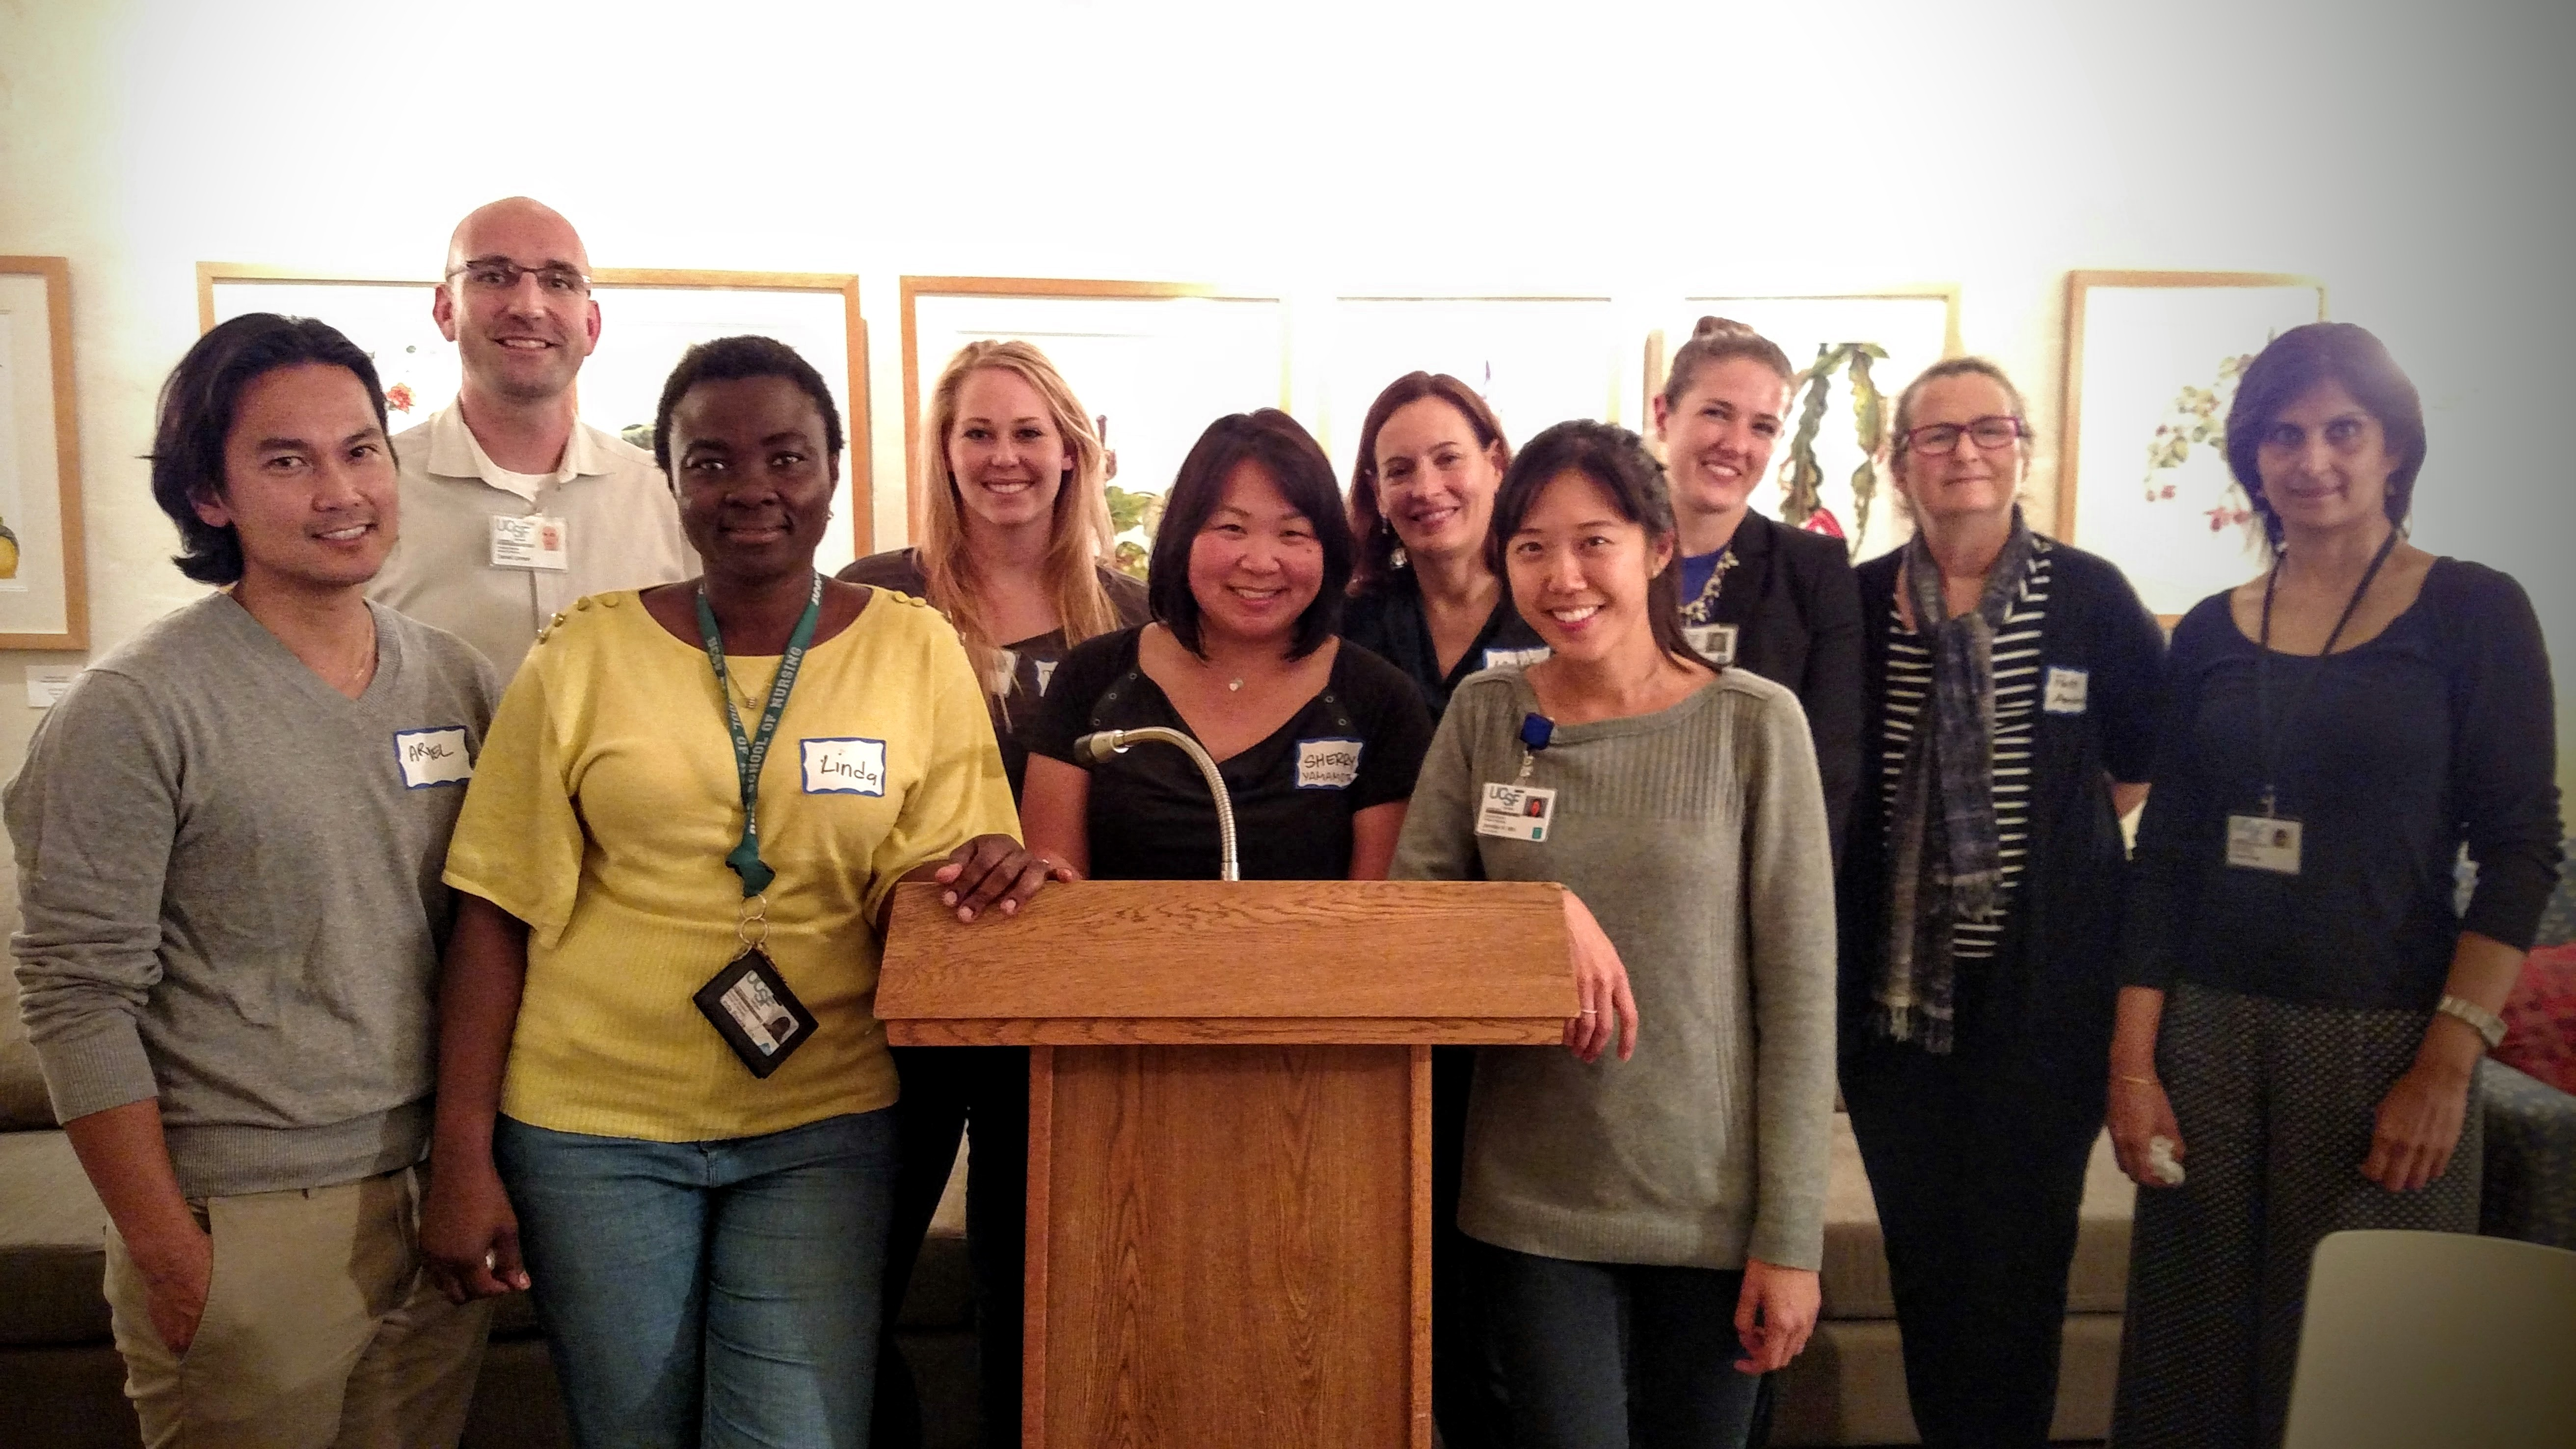 UCSF School of Nursing doctoral students at recent Doctoral Dinner Celebration (L-R) Ariel Baria, Linda Bauwa, Sherry Yamamoto, Jenny Min; back row (L-R) Daniel Linnen, Debra Phillips, Laurie Bauer, Sarah Richoux, Patti Ambrose, Komal Singh. Photo credit: